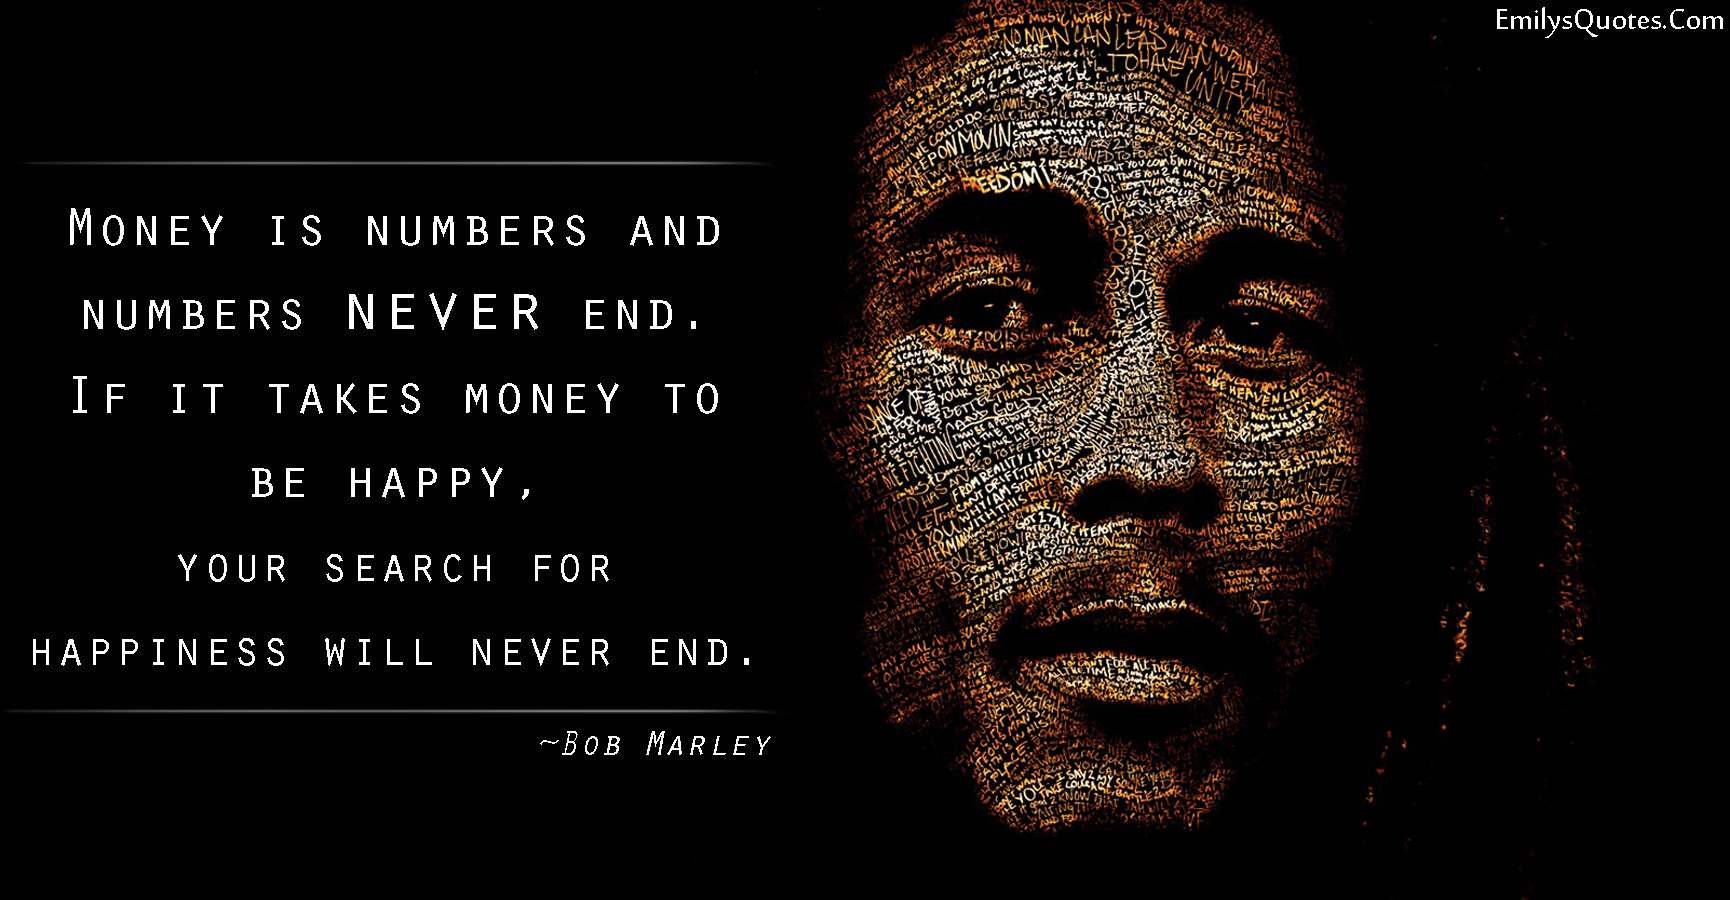 Bob Marley Quotes About Friendship Money Is Numbers And Numbers Never Endif It Takes Money To Be